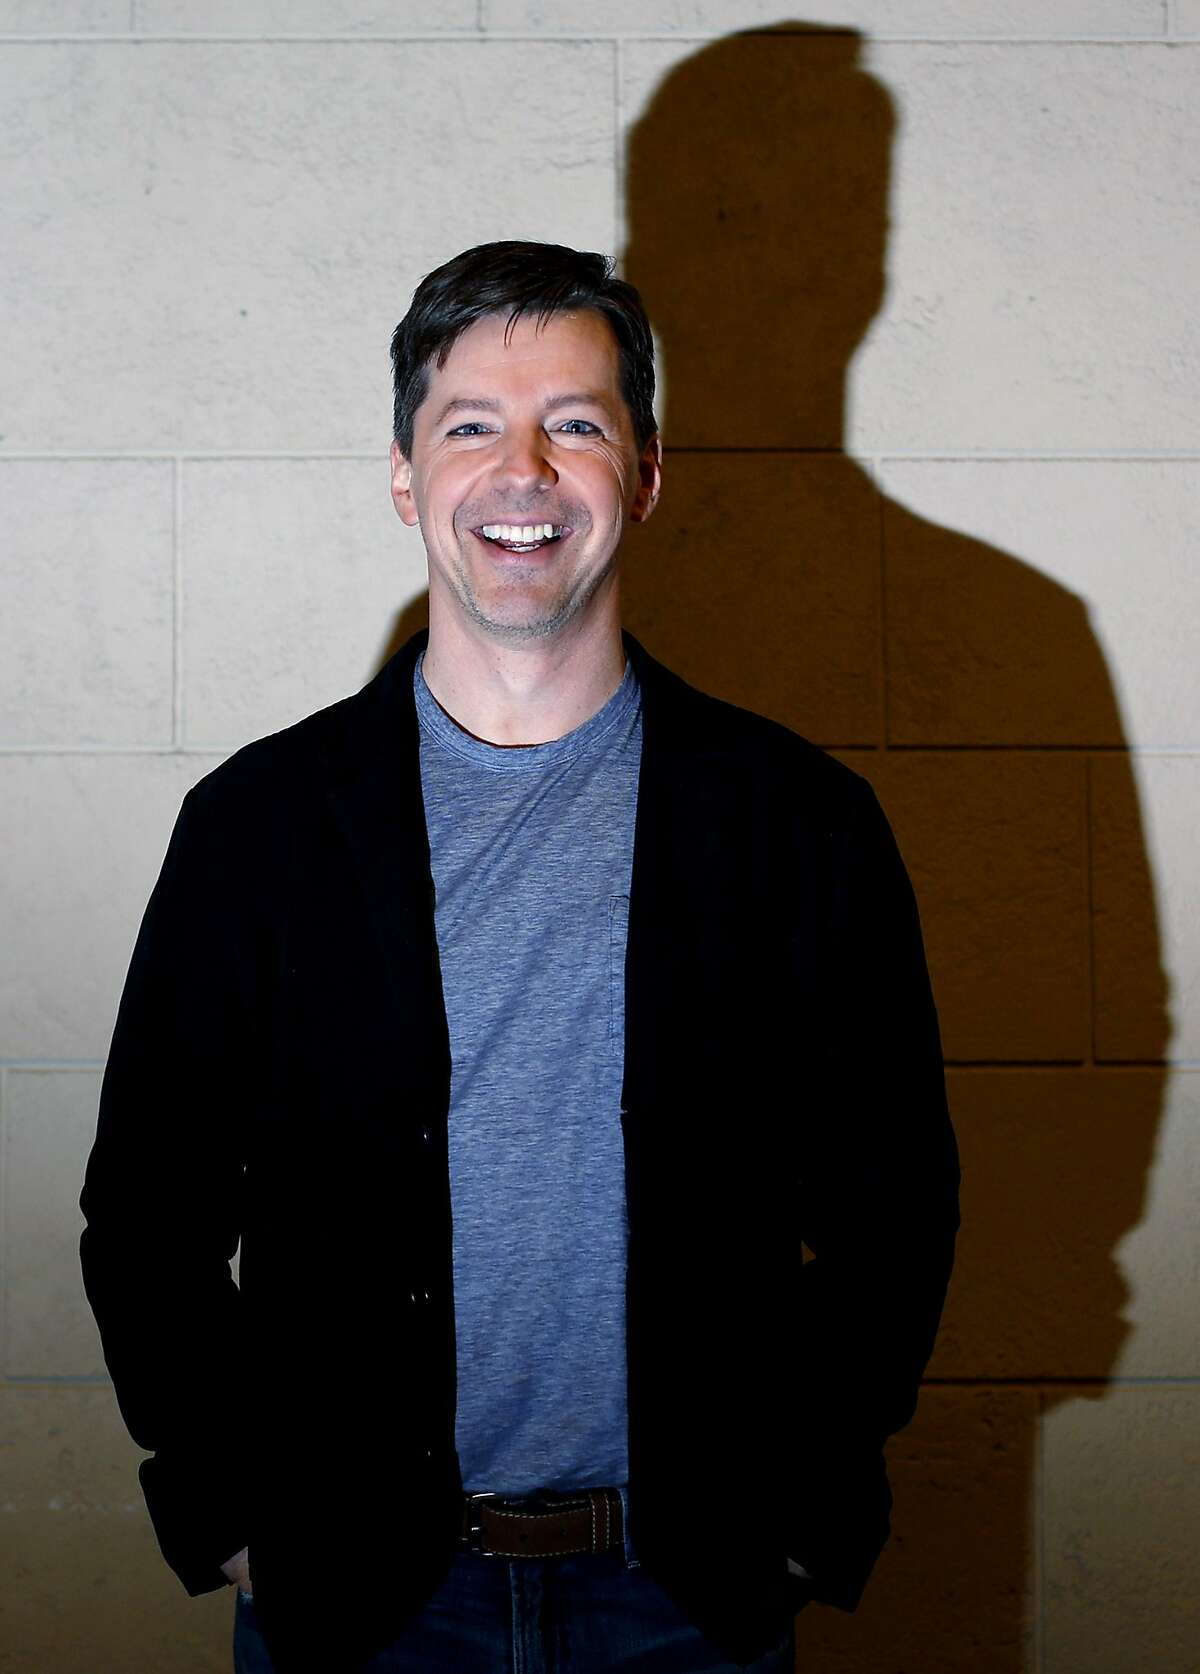 """Sean Hayes, who is playing God in """"An Act of God"""" at the Golden Gate Theater, poses at the Orpheum Theatre in San Francisco, California, on Tuesday, Jan. 12, 2016."""